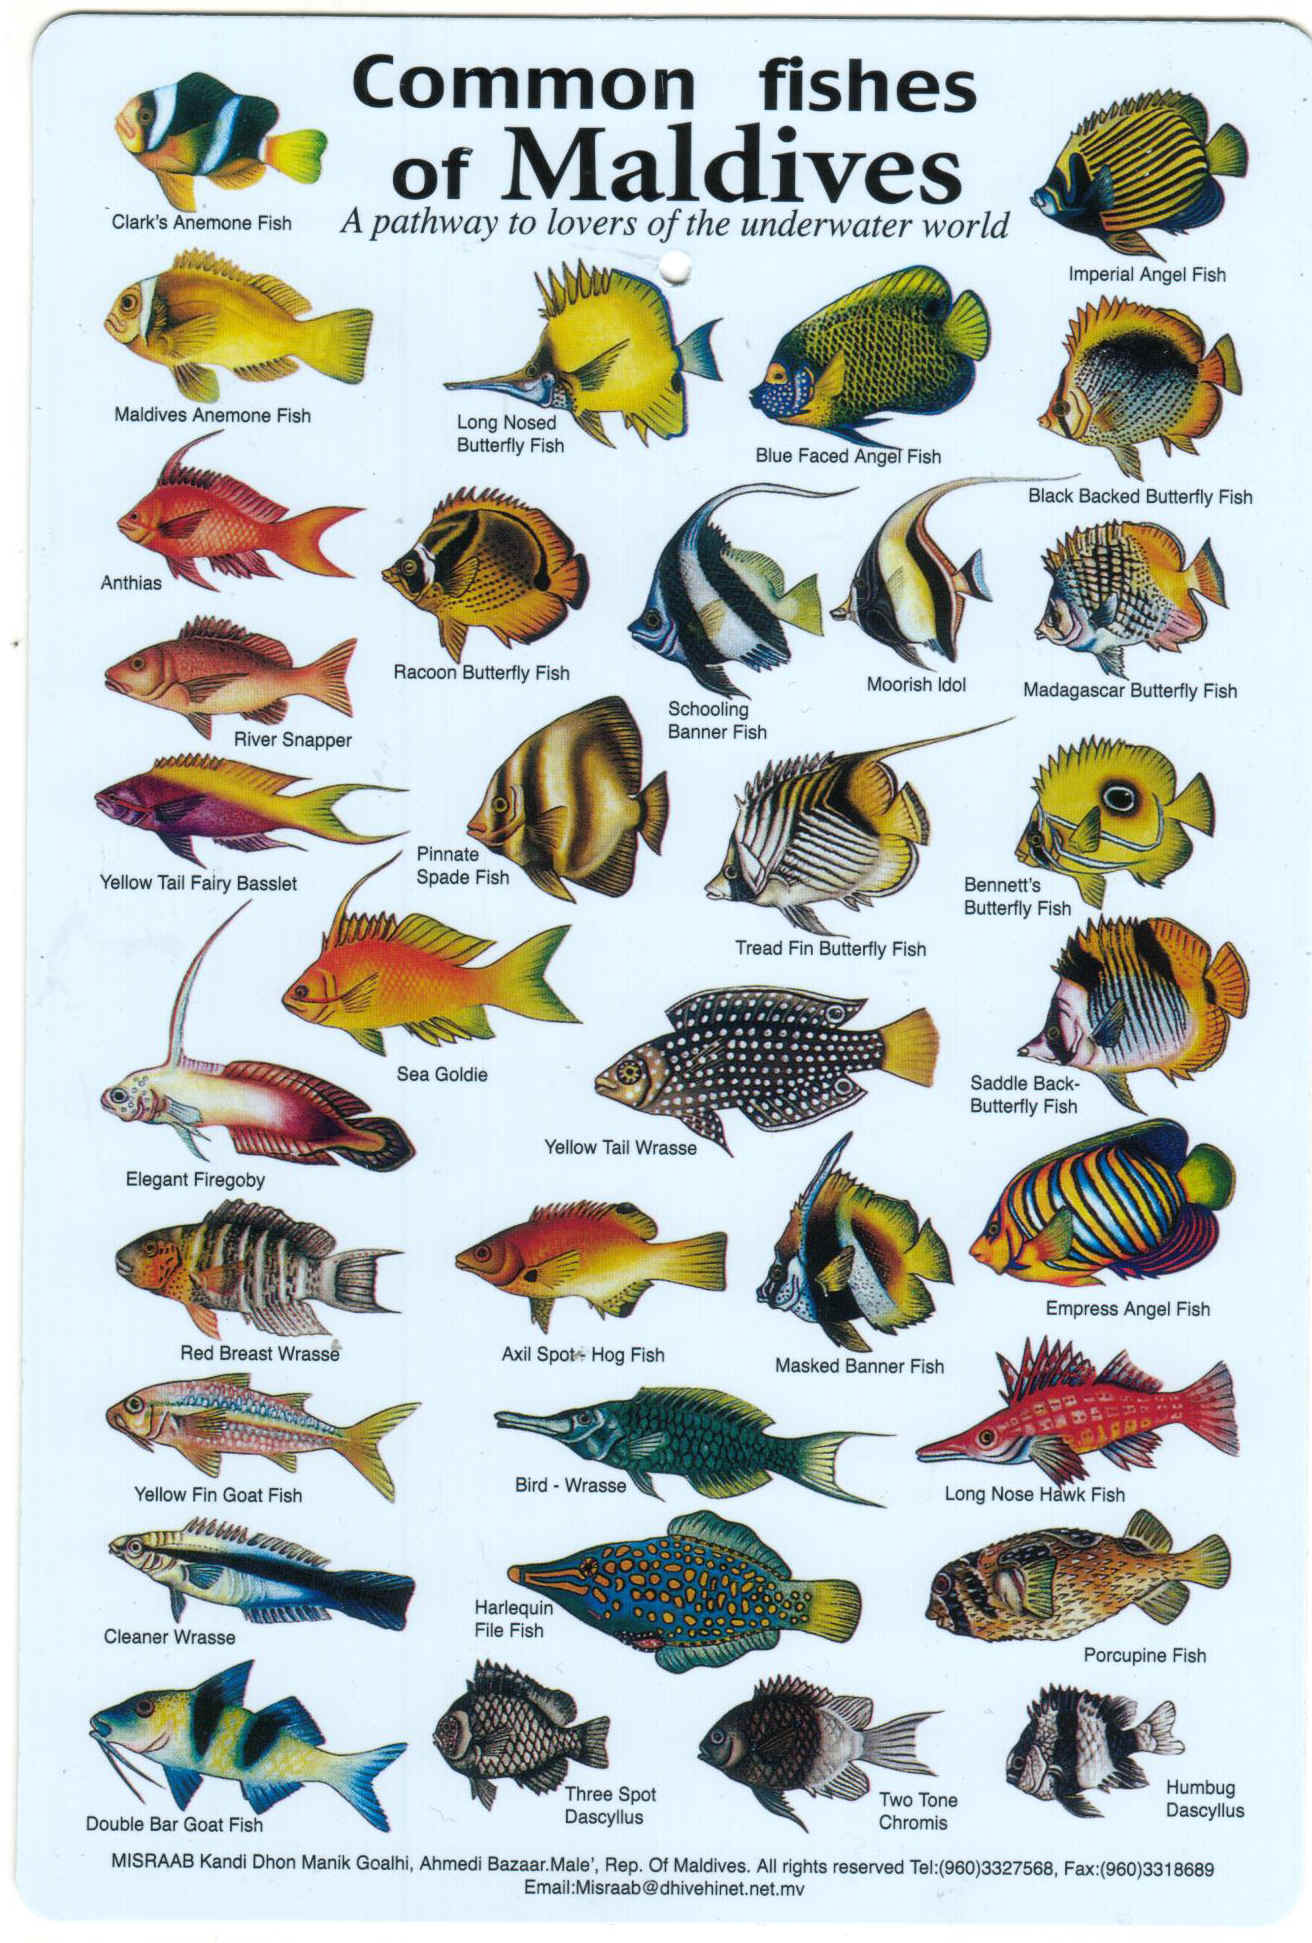 Caribbean Reef Fish Marine Organism Illustration Vintage Retro Kraft Coated Poster Decorative DIY Wall Canvas Sticker Home Decor In Painting Calligraphy